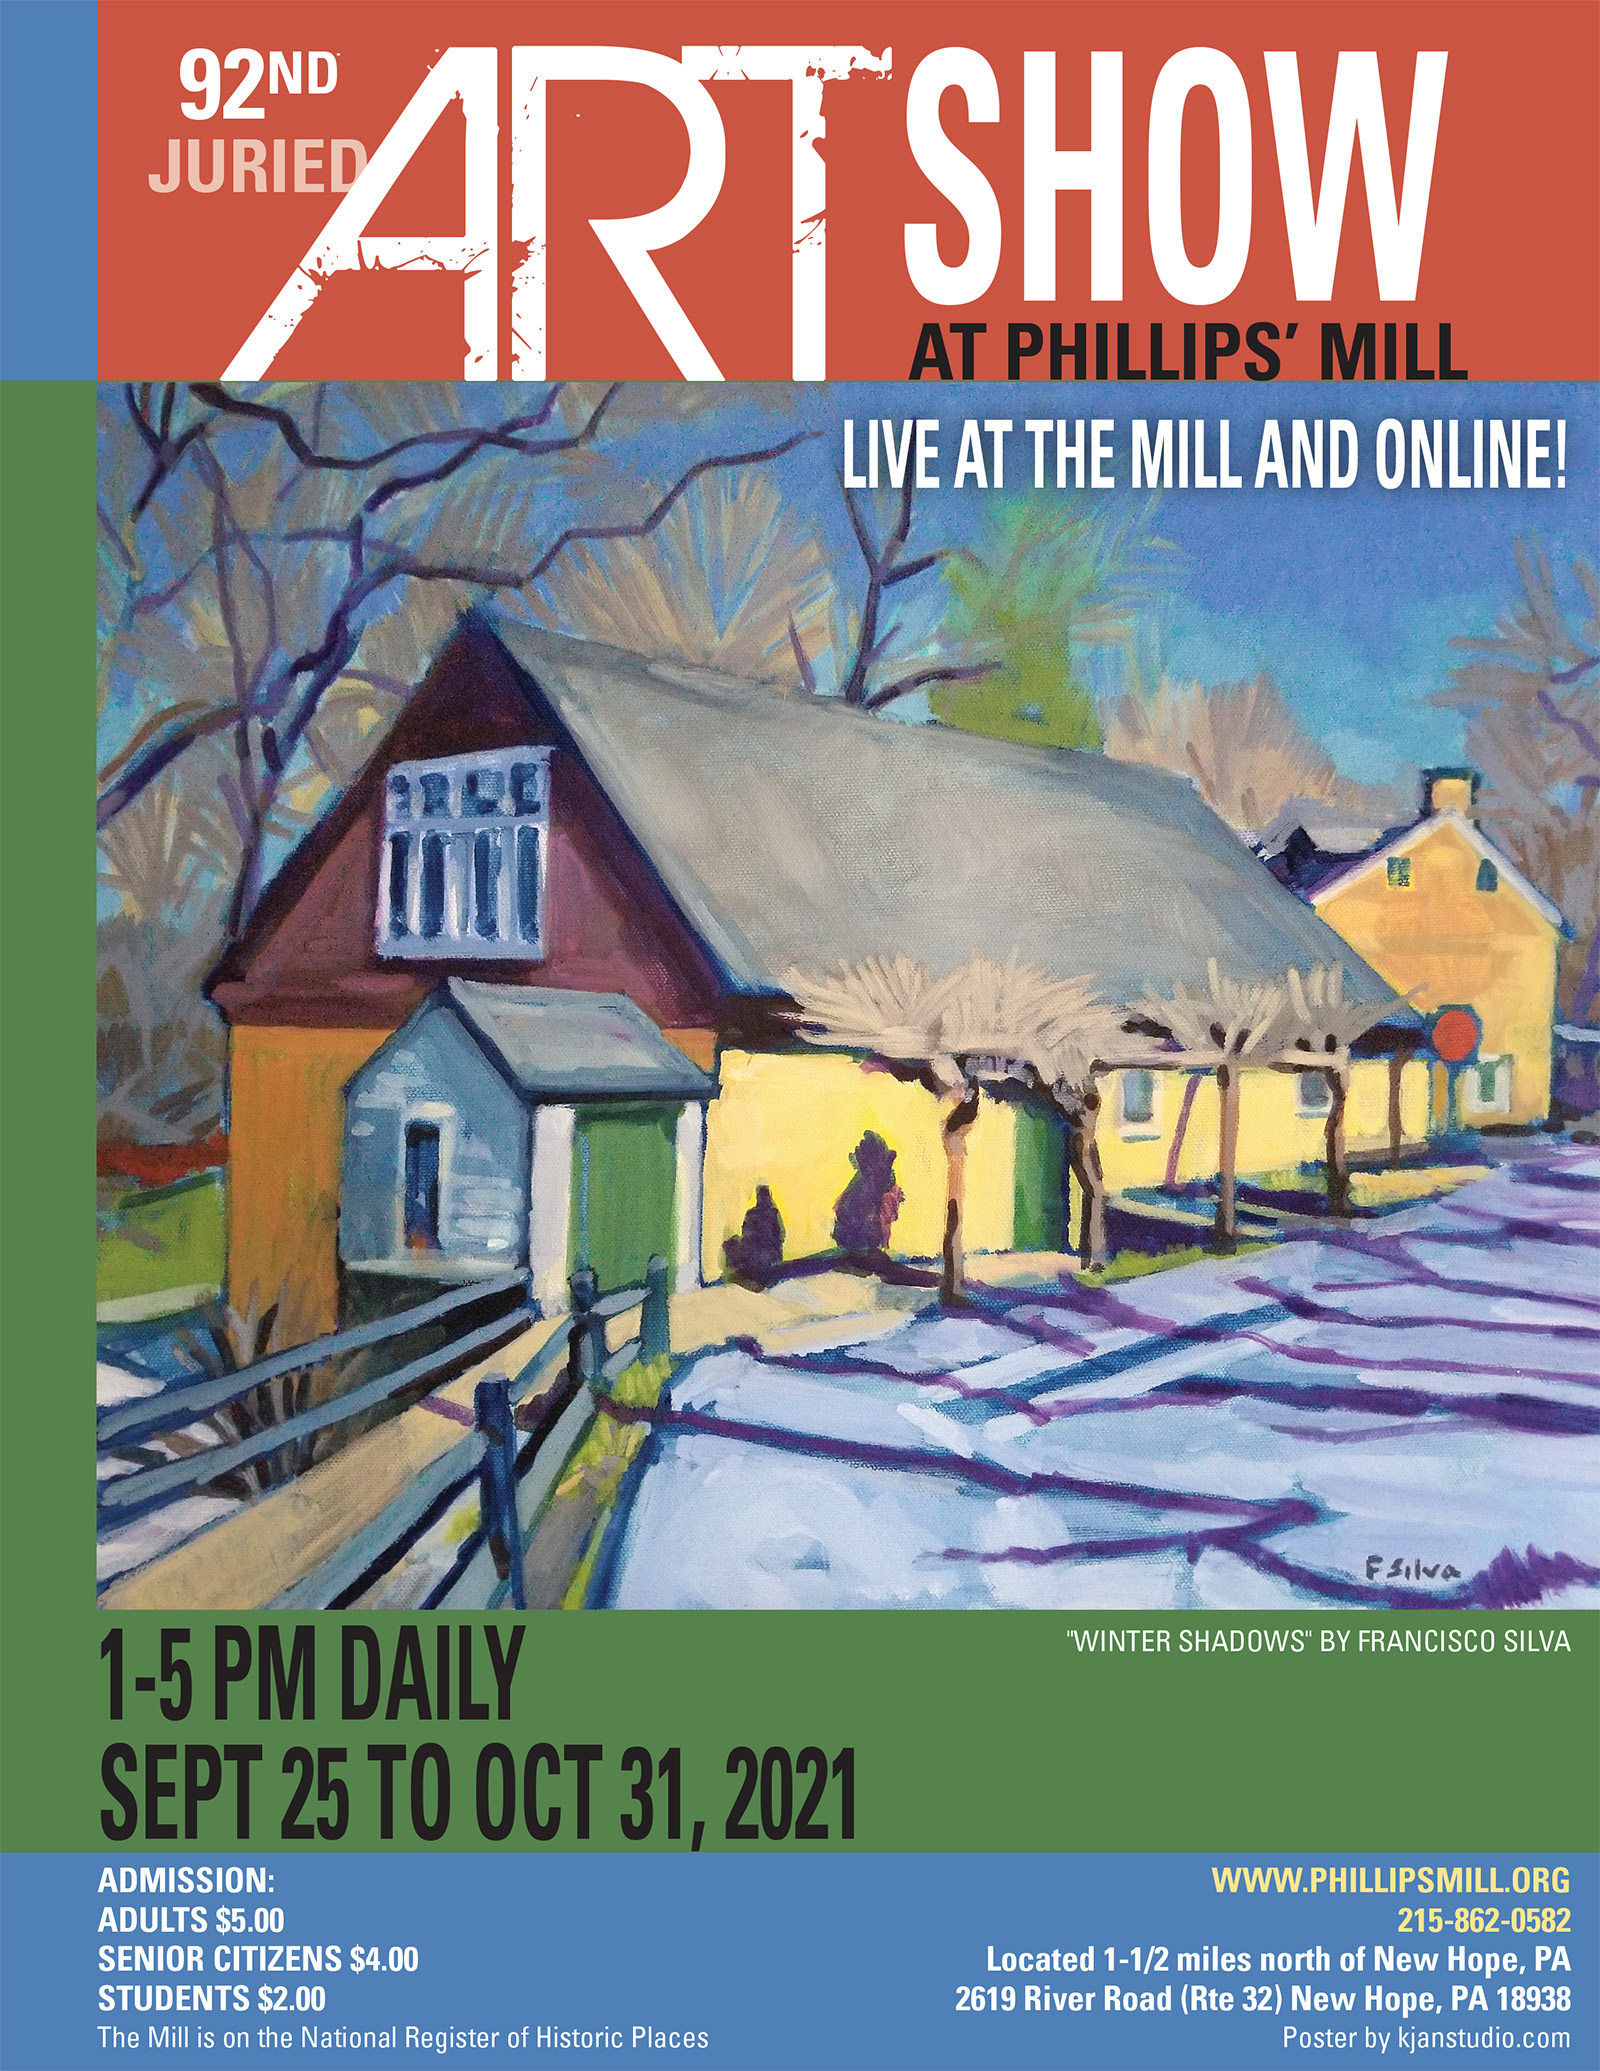 92nd Juried Art Show Poster with Signature Image by Francisco Silva